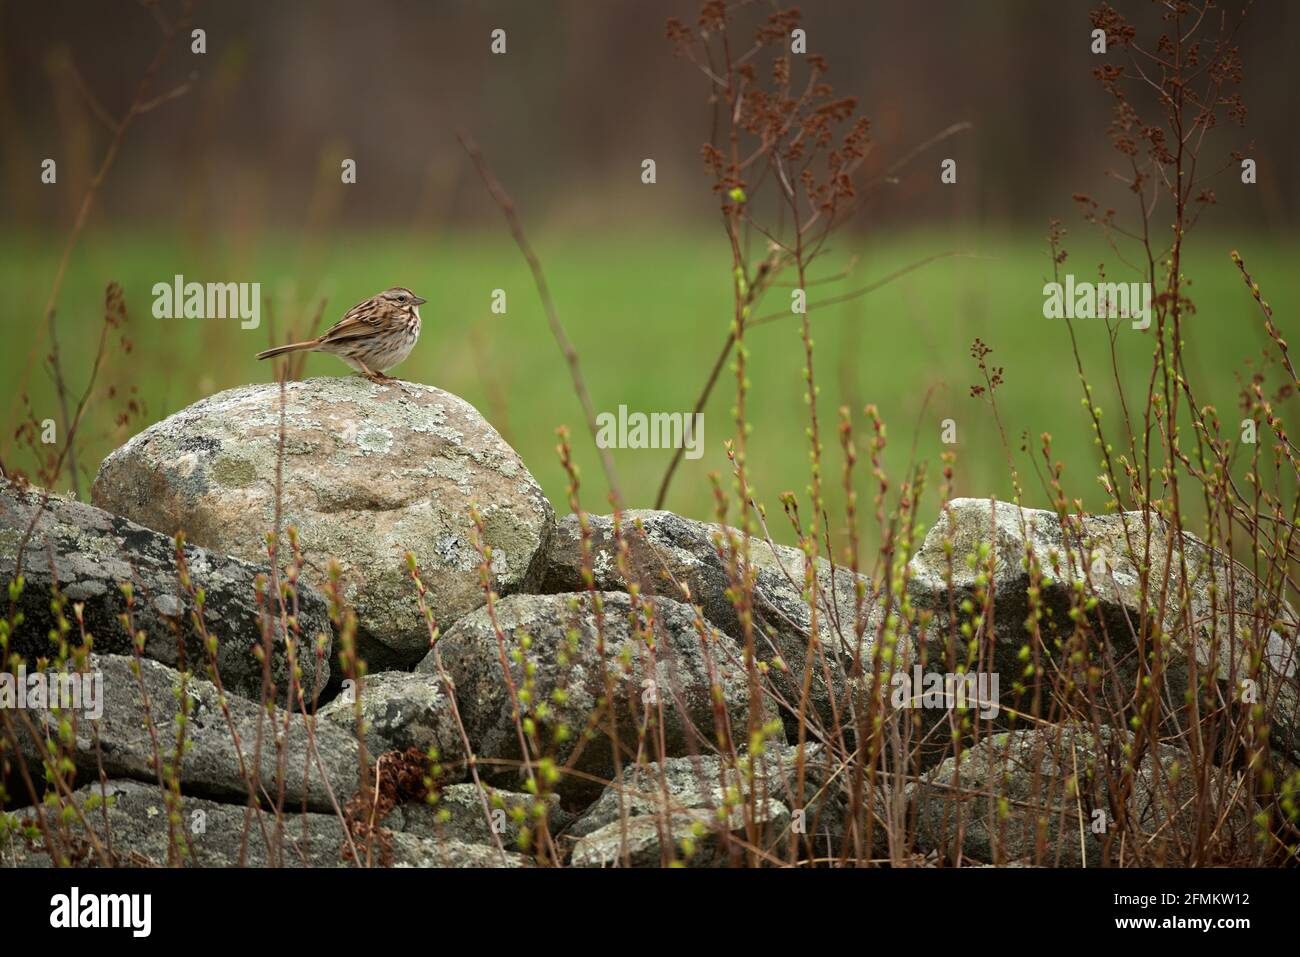 pretty small juvenile white throated sparrow ;singing  sweet melody on big stone with green blurry background... Stock Photo